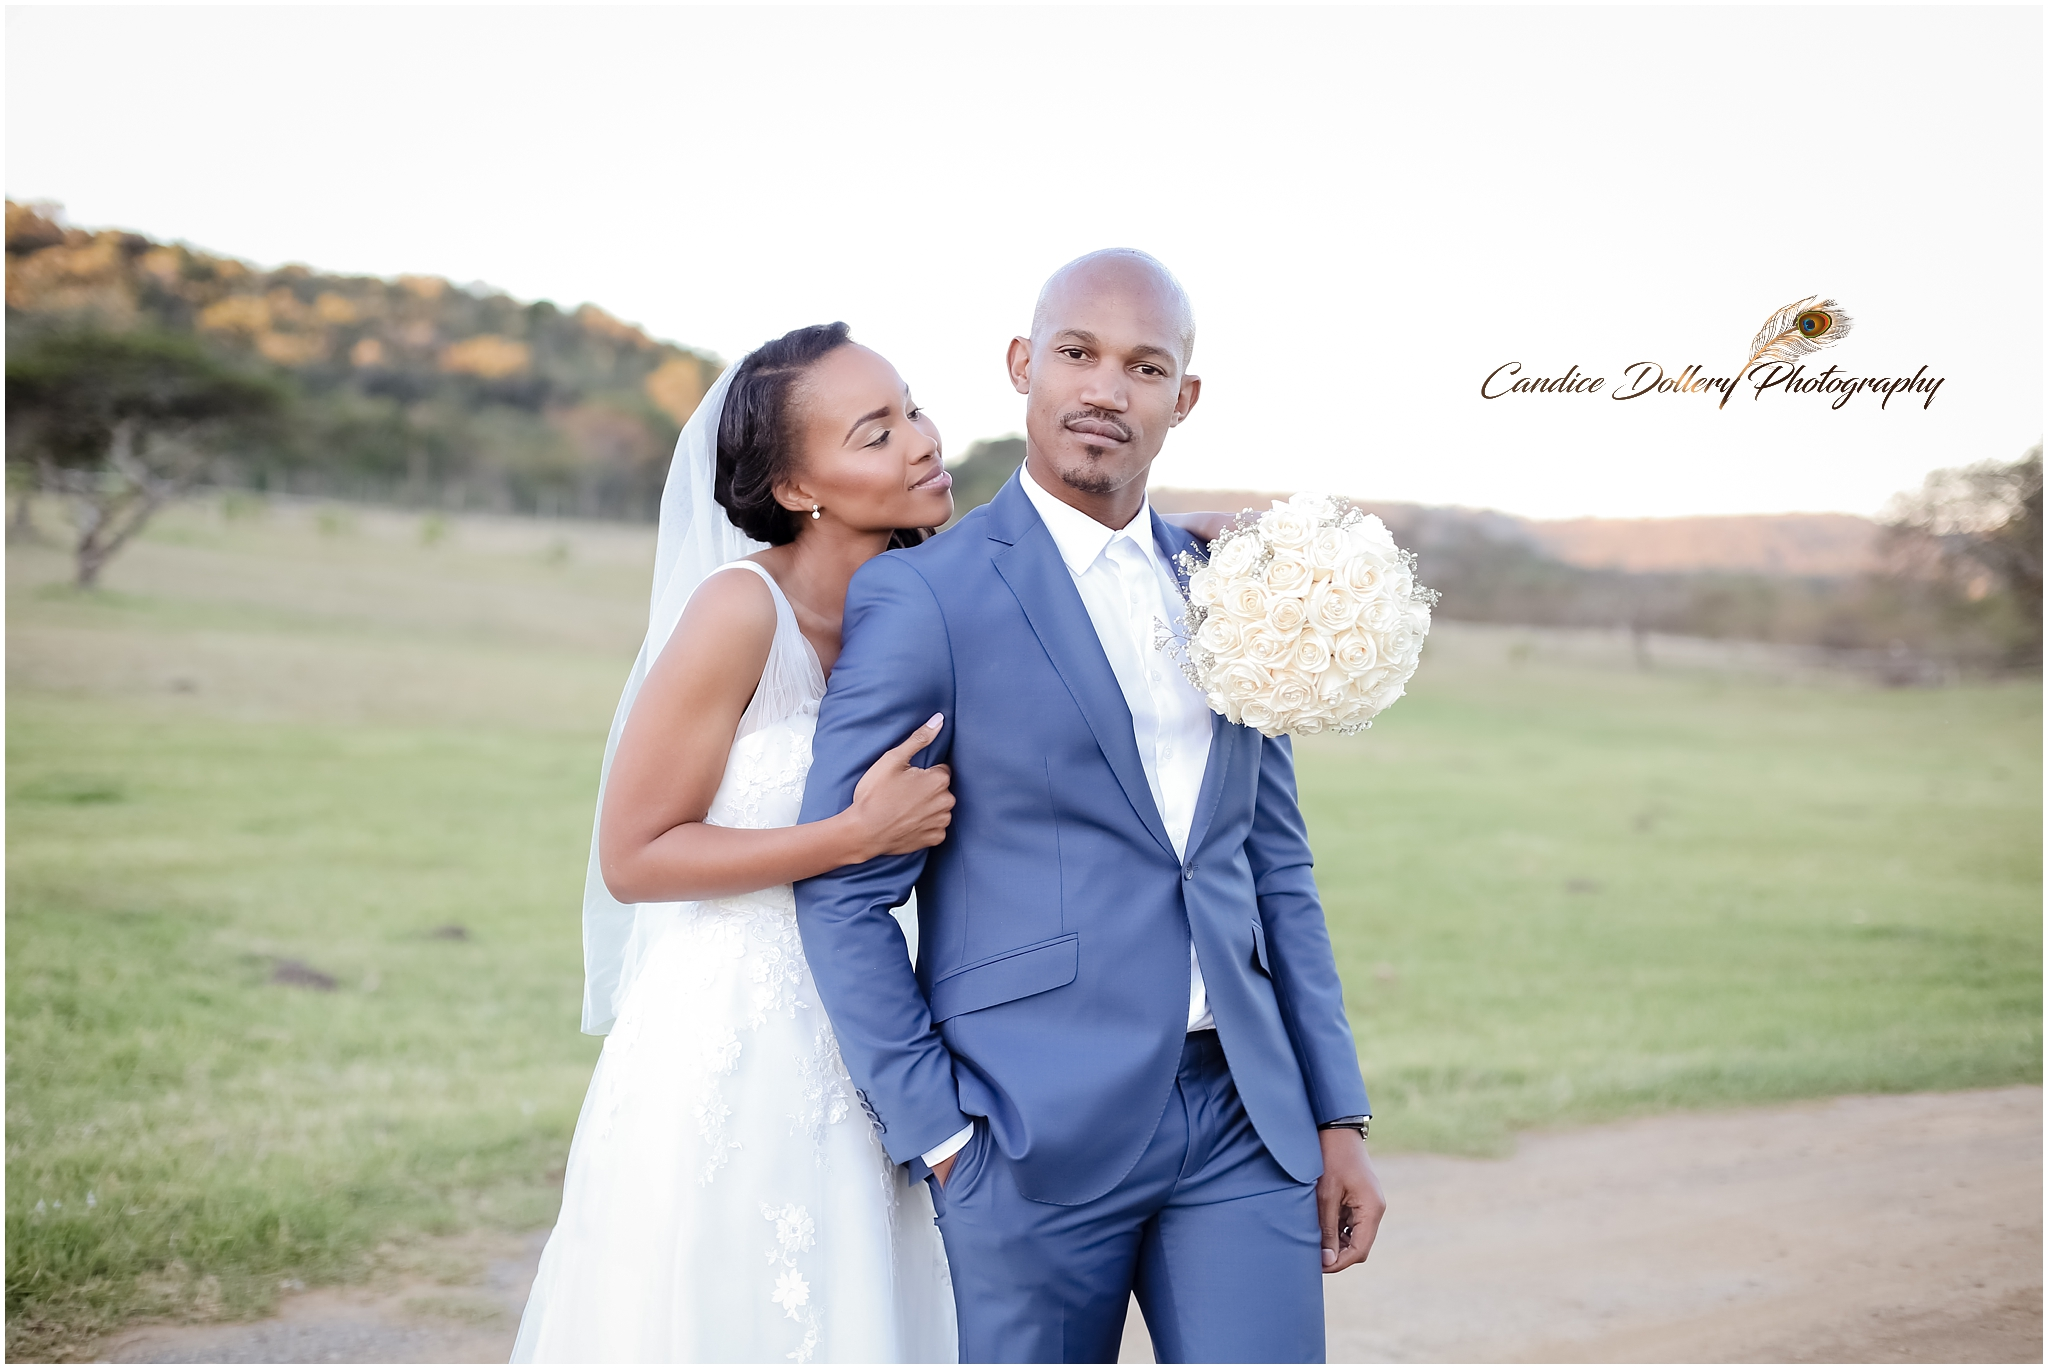 lelethu-kgotsos-wedding-candice-dollery-photography_1695